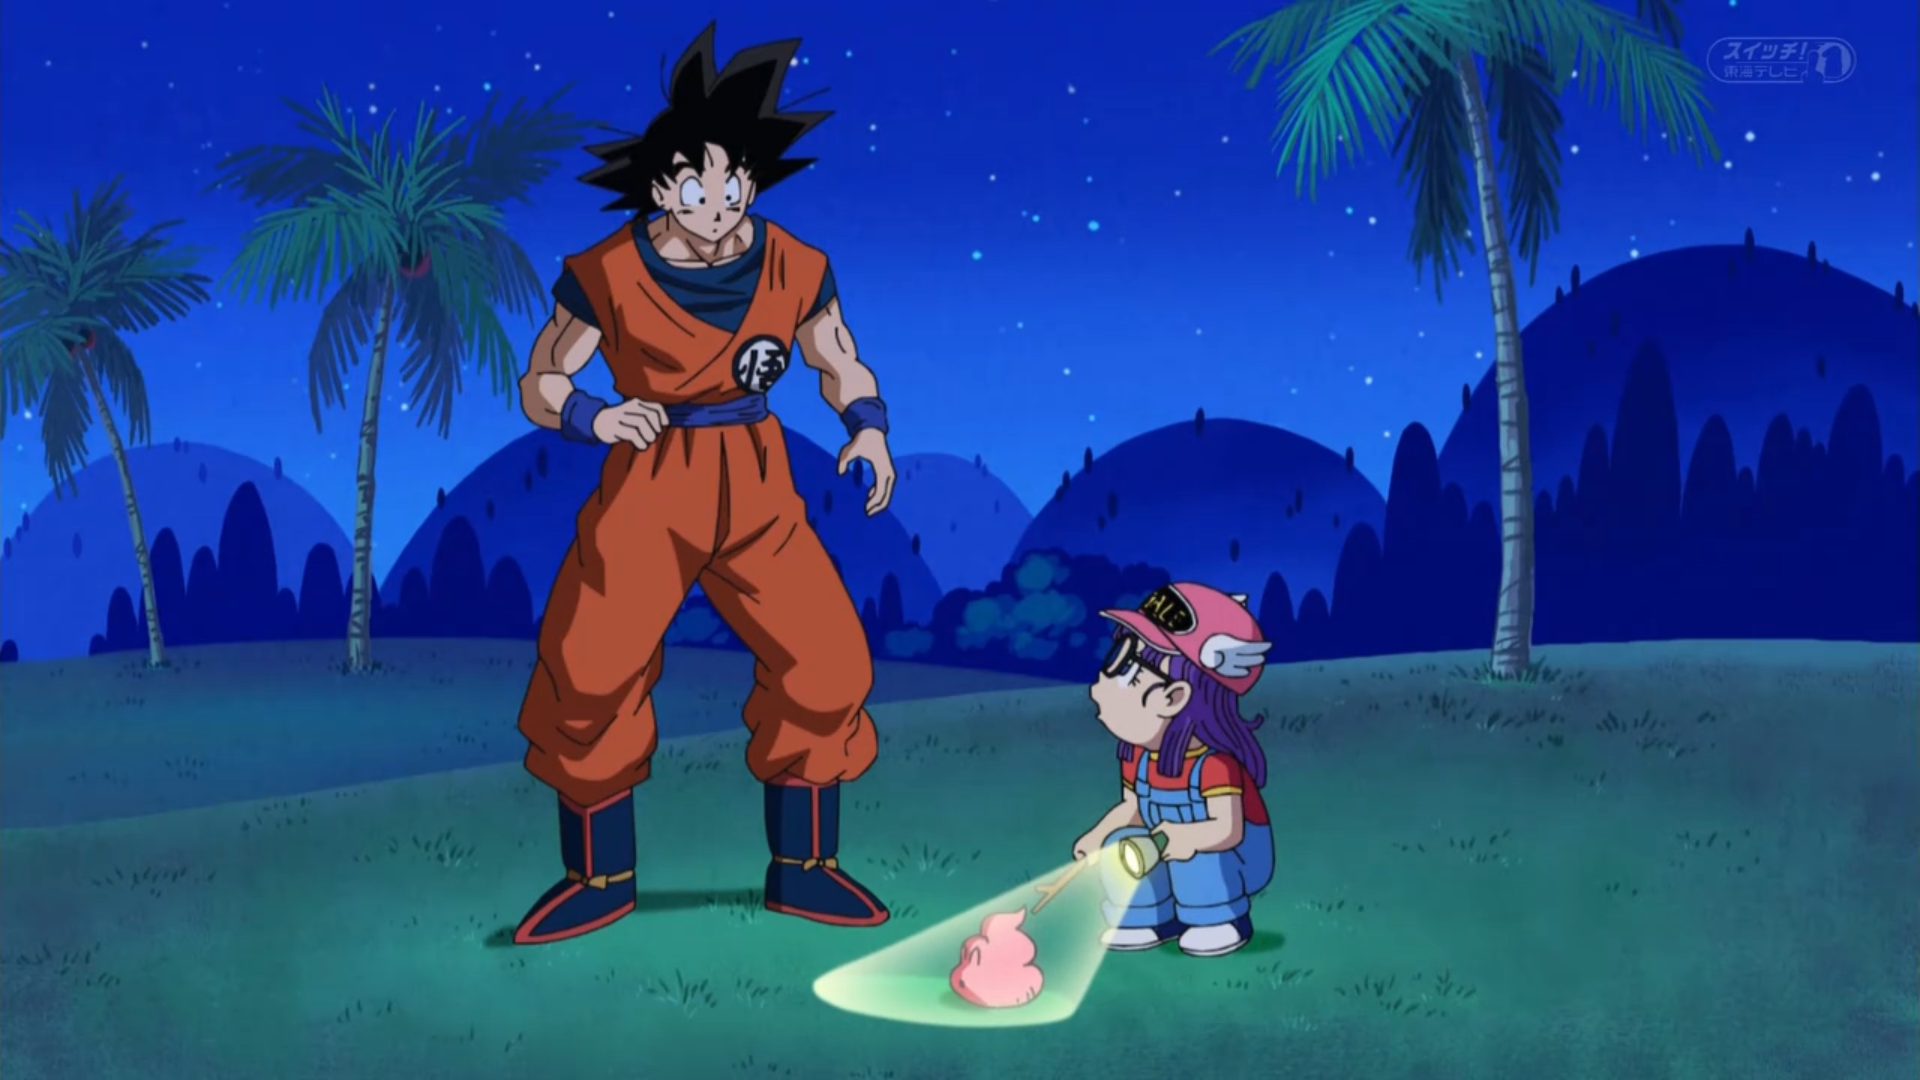 Goku s Energy is Out of Control The Struggle to Look After Pan